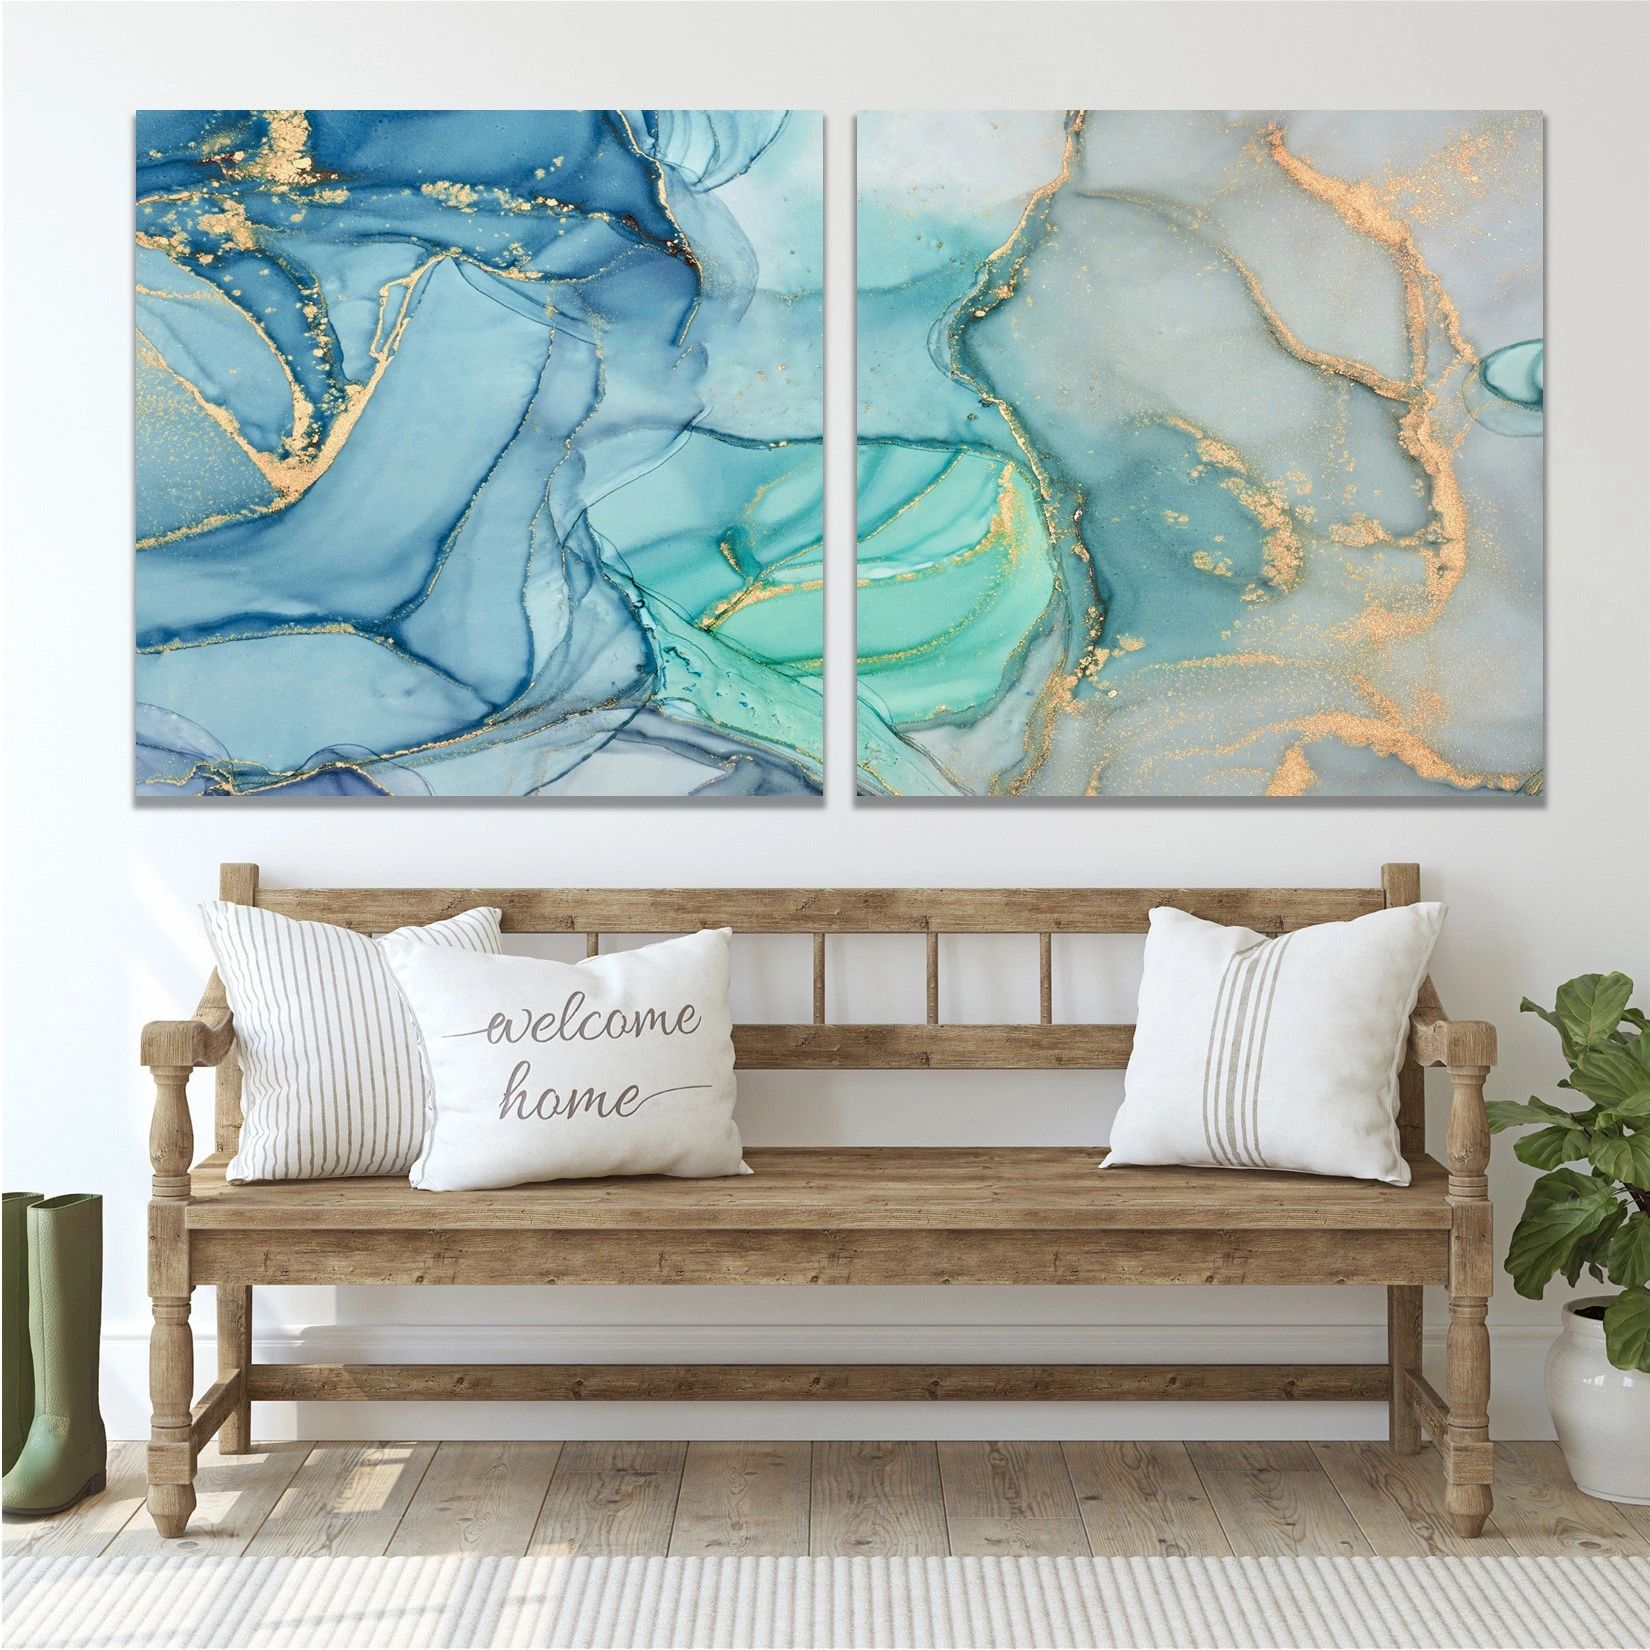 Colorful Acrylic Pour Paintings on Canvas, Modern Coastal Canvas Art Large Abstract Canvas Wall Art